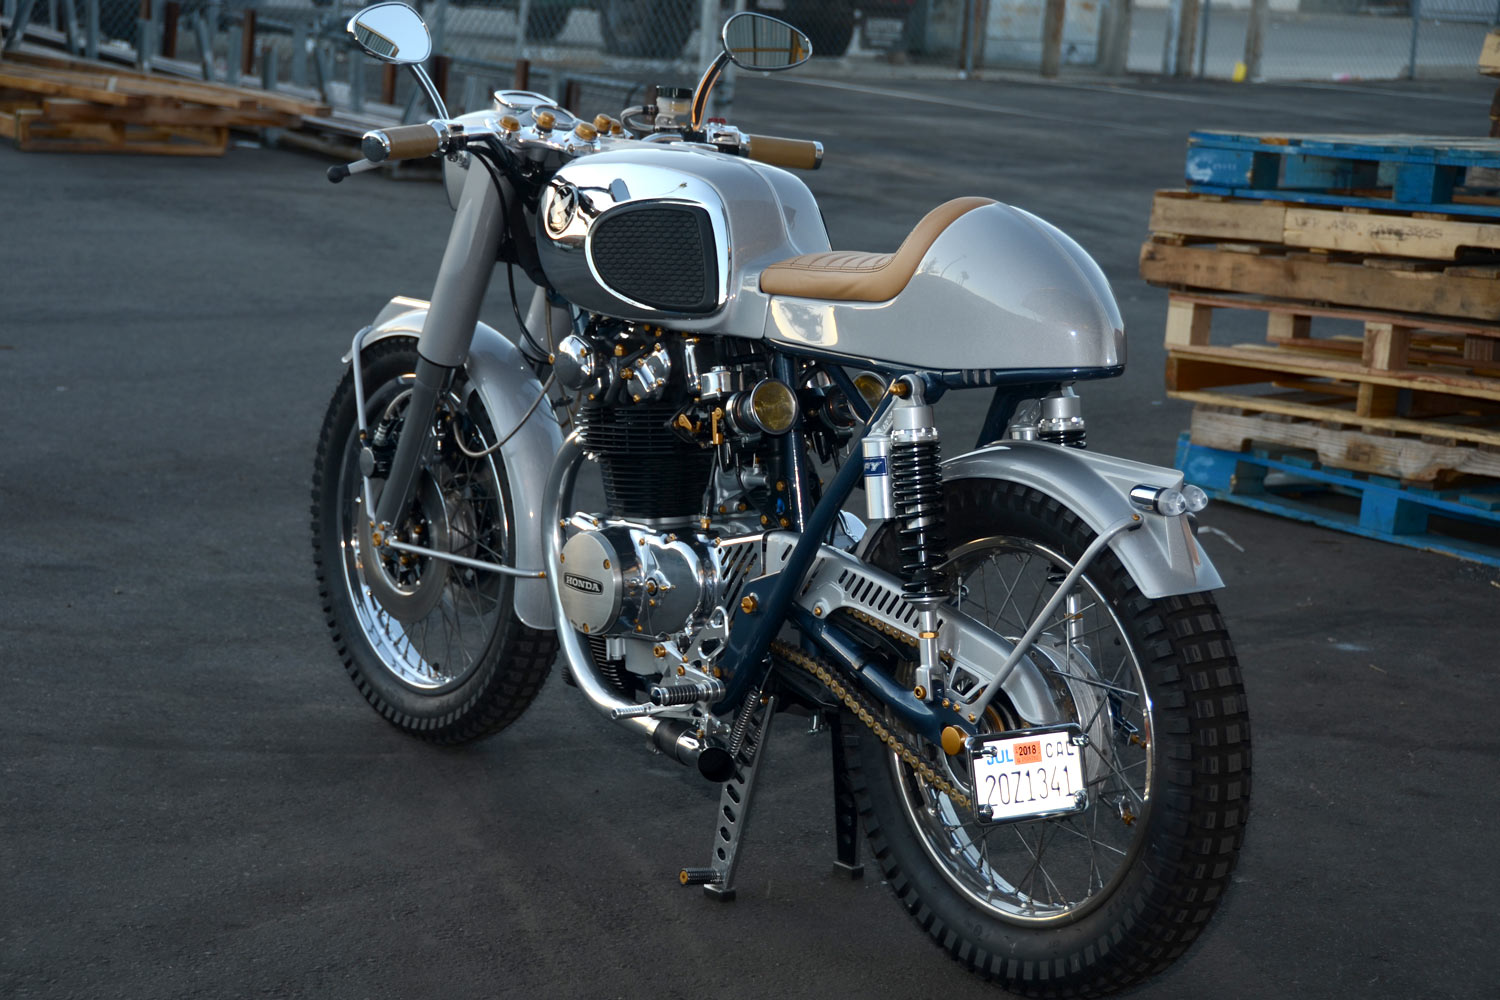 1971 Honda CB450 'Cafe Racer' by Ara Mekhtarian - California Dreamin' indeed!